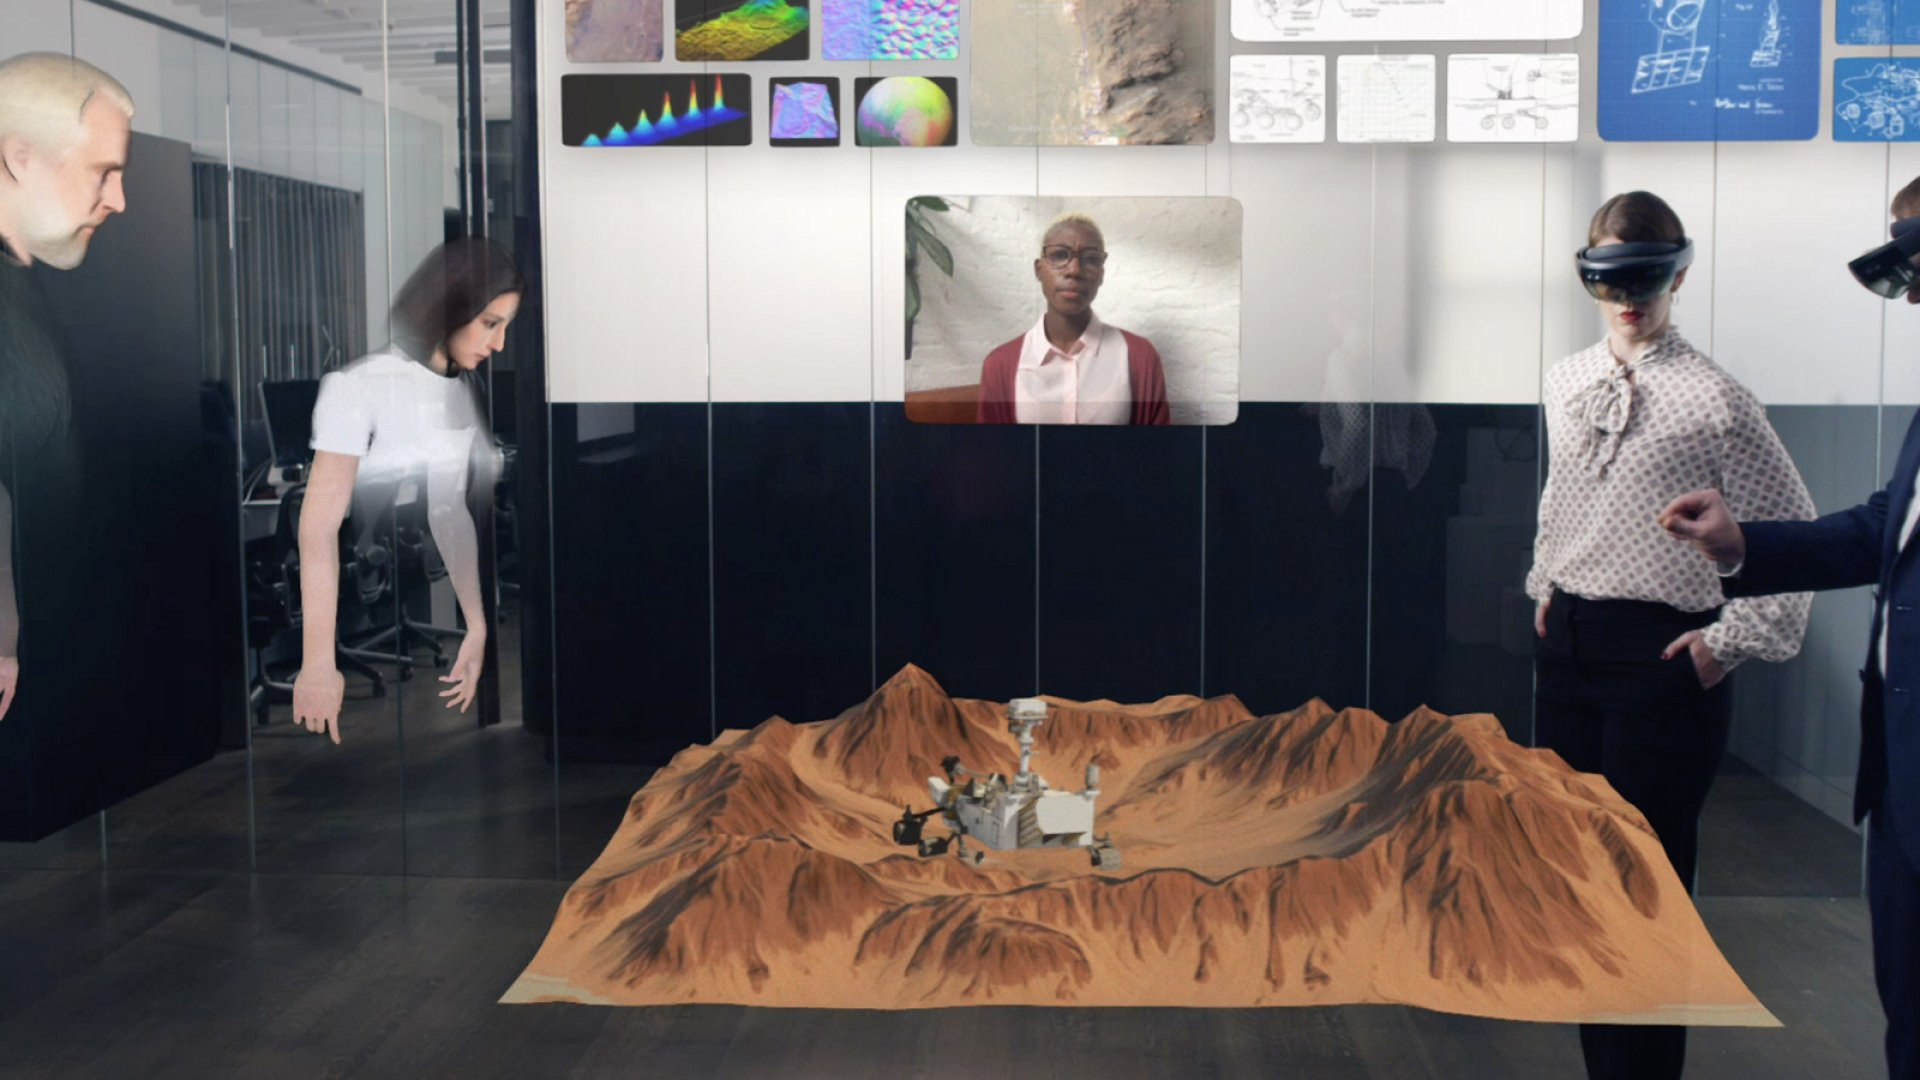 Conference Calls Are Terrible. This Startup Is Replacing Them With Holographic Meetings